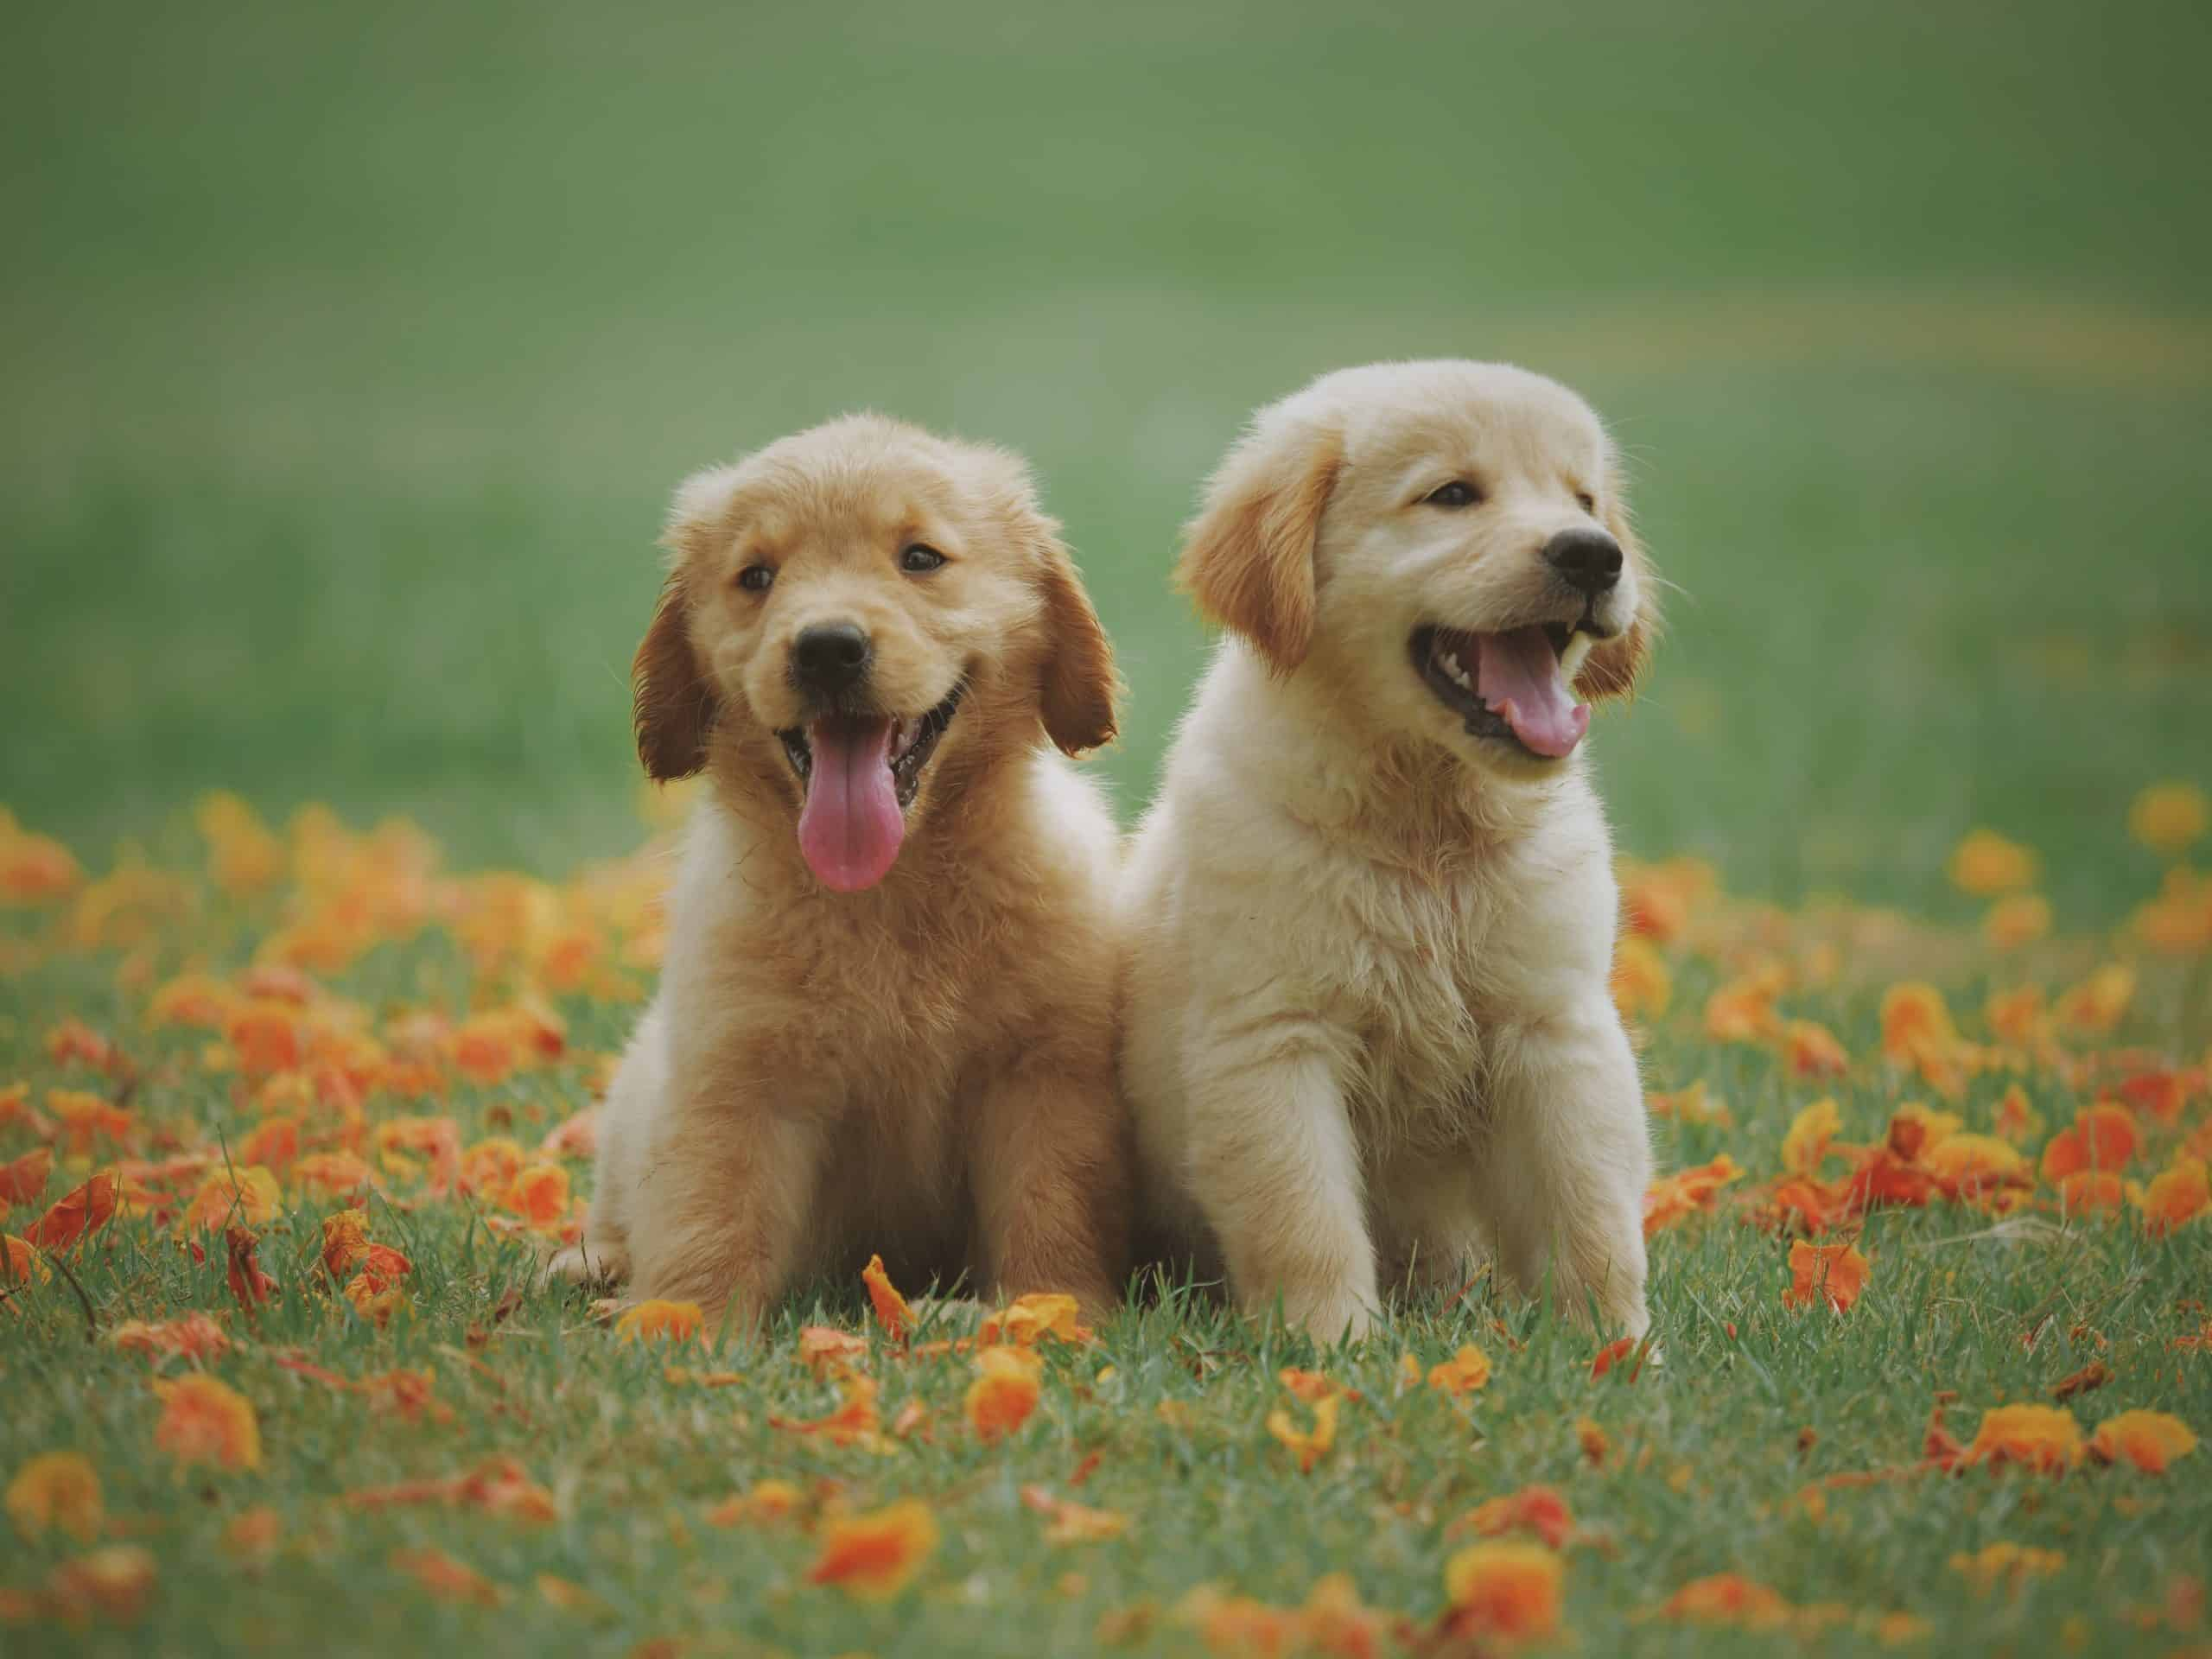 Tips To Raise Dogs For Fun And Entertainment